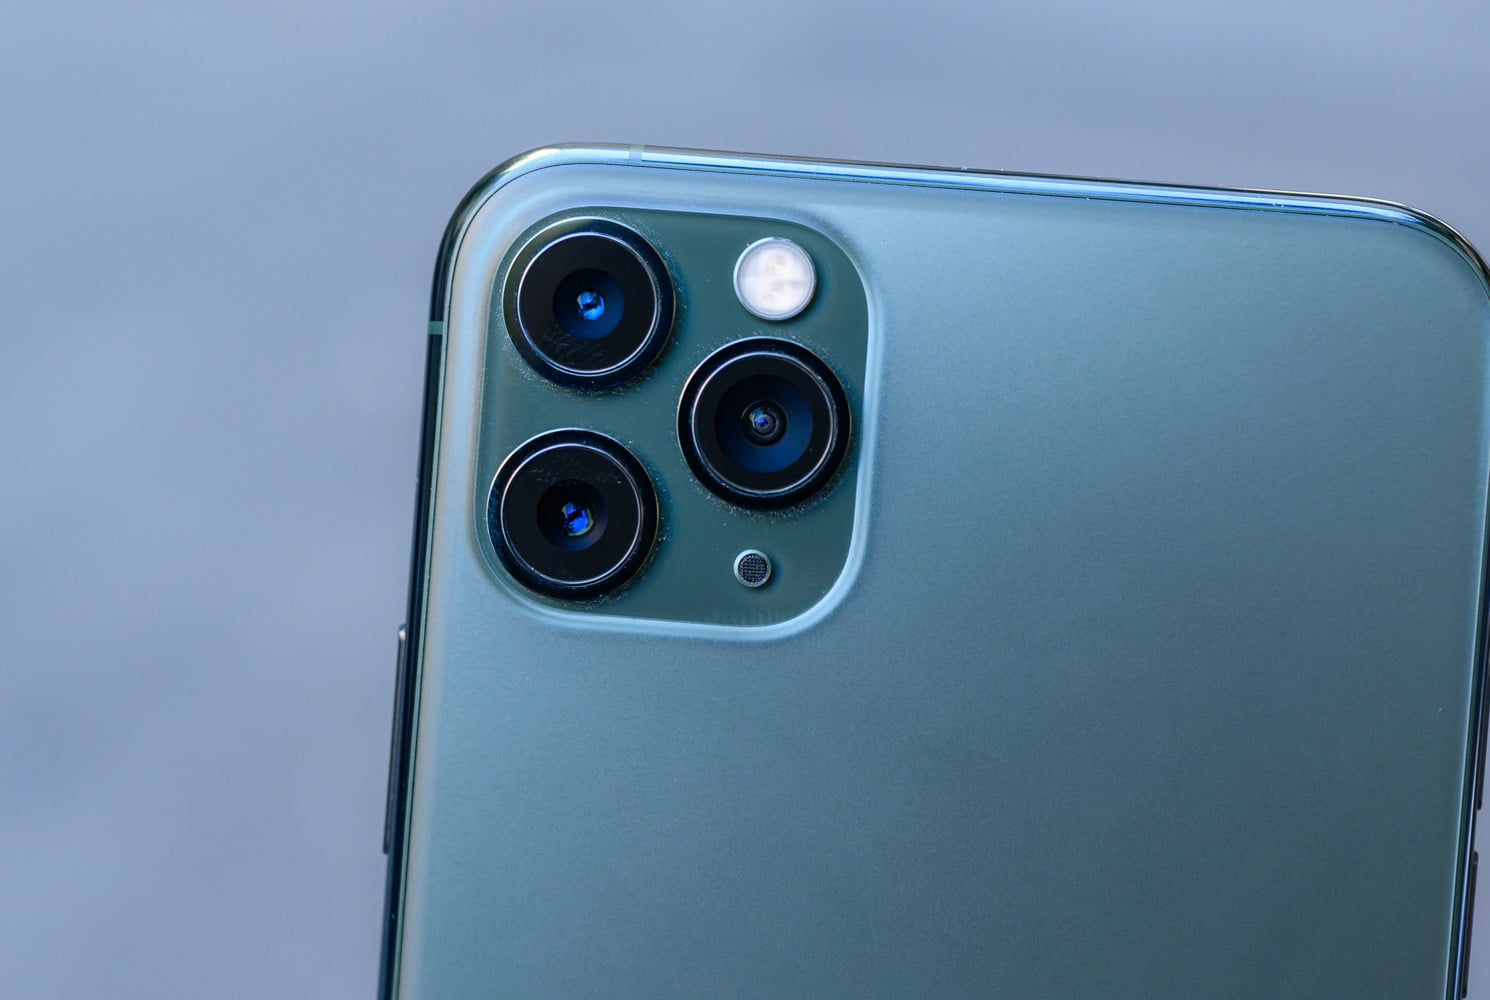 The first iOS 13.2 developer beta brings the iPhone 11 camera's Deep Fusion tech